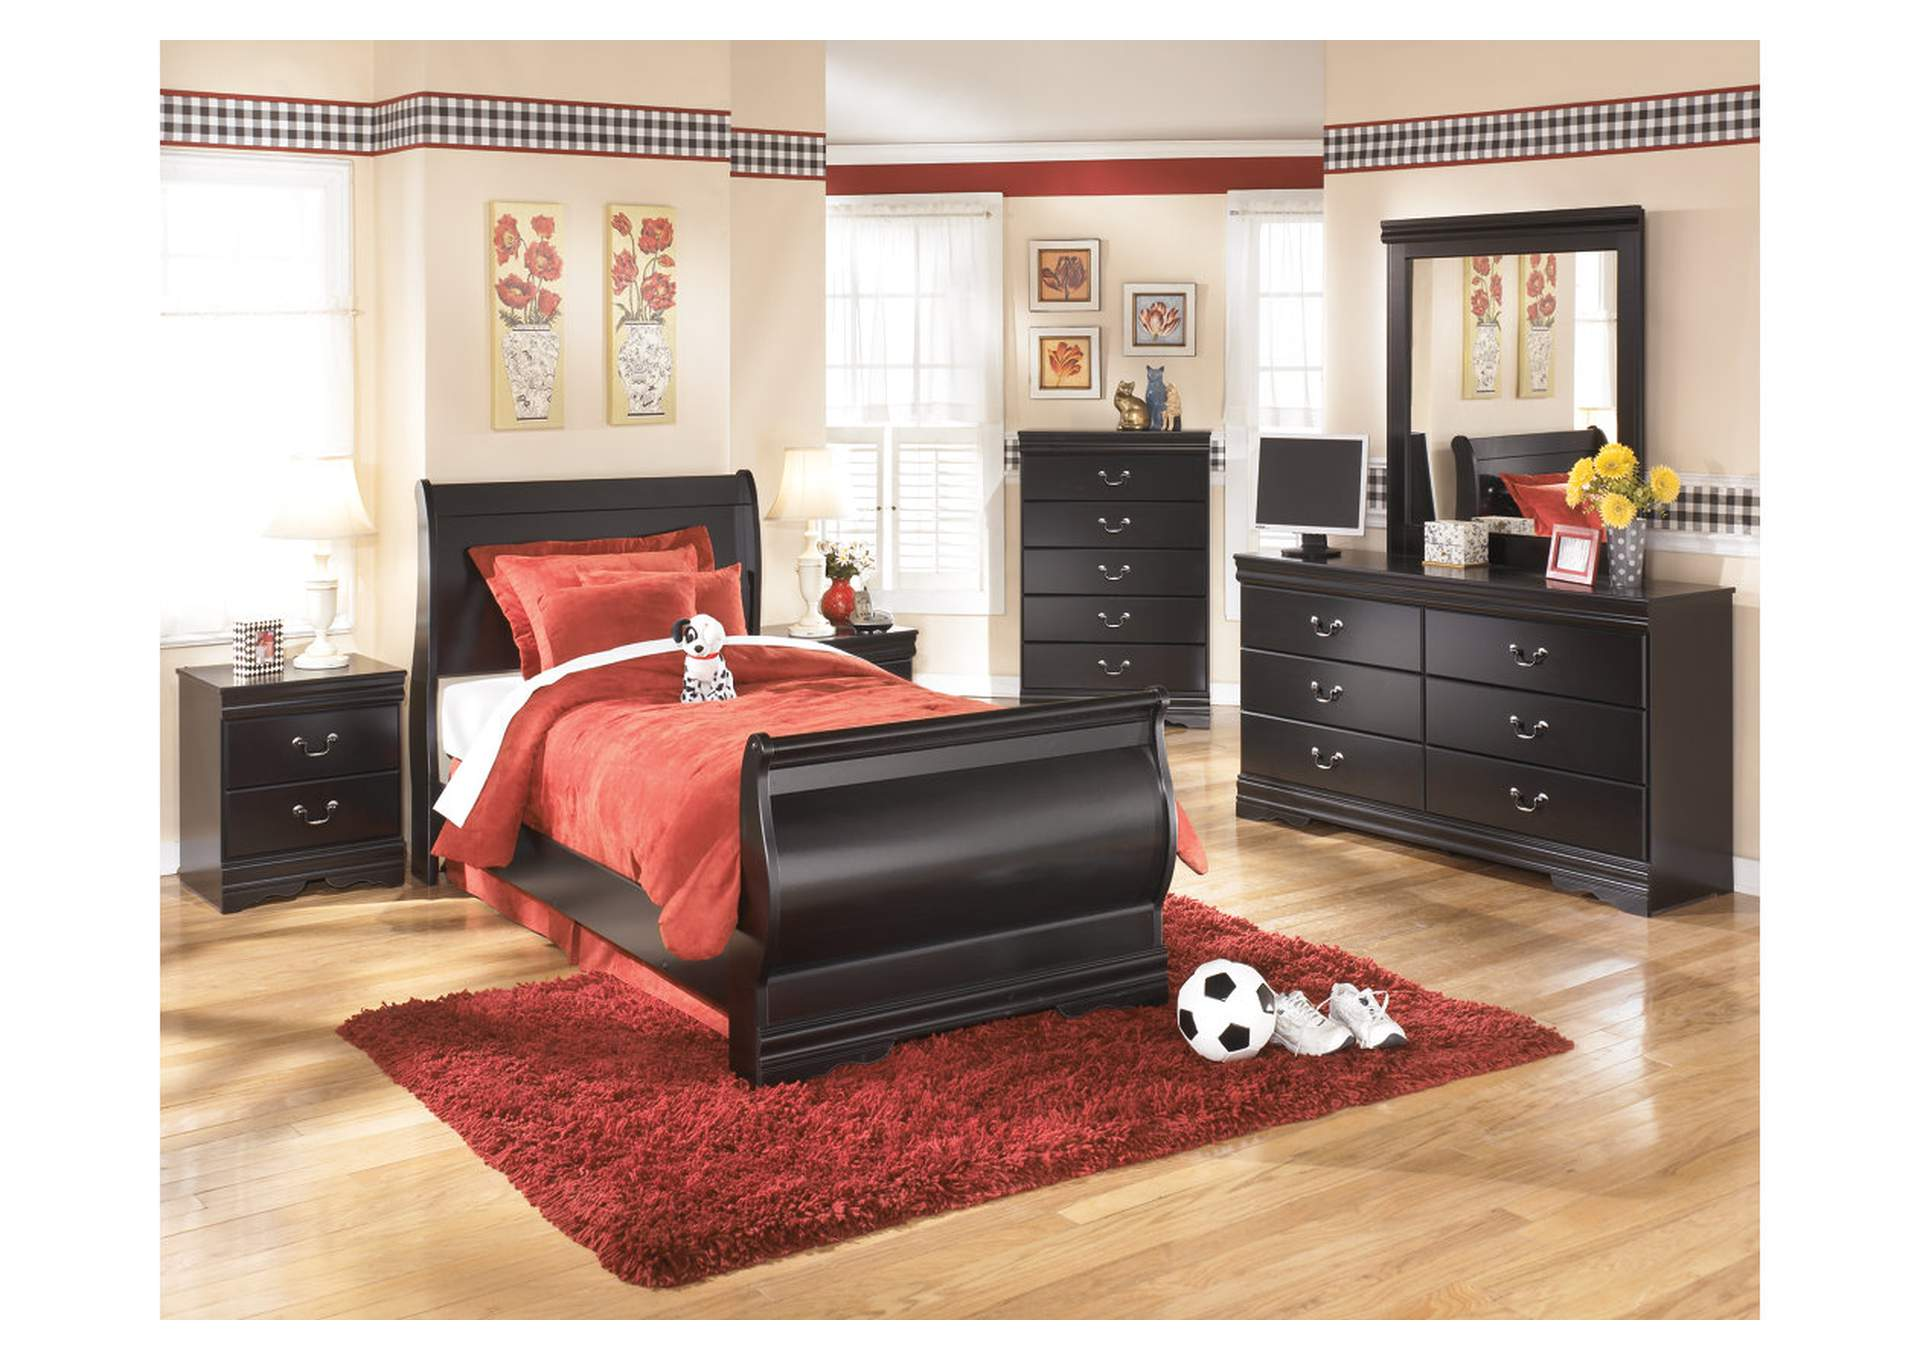 Huey Vineyard Twin Sleigh Bed, Dresser & Mirror,ABF Signature Design by Ashley